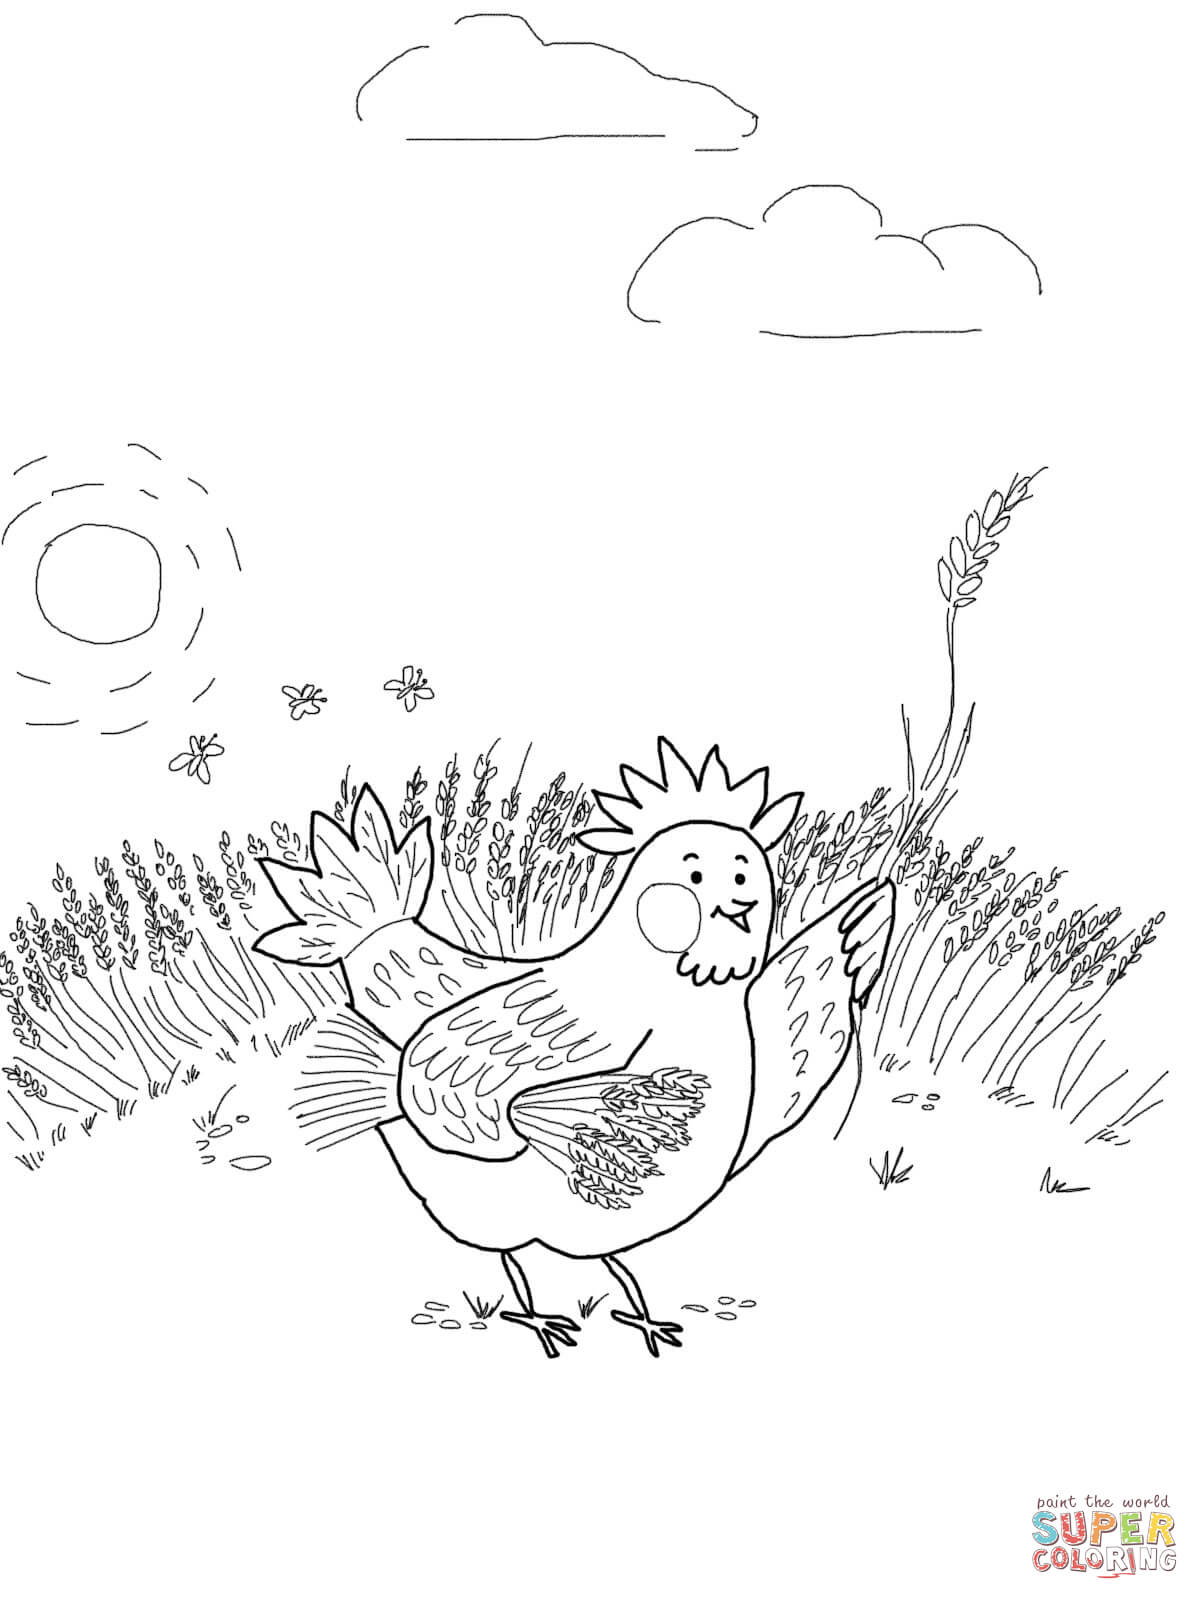 Free Worksheet Little Red Hen Worksheets the little red hen coloring pages az page www pavingmaze com gathering wheat online super